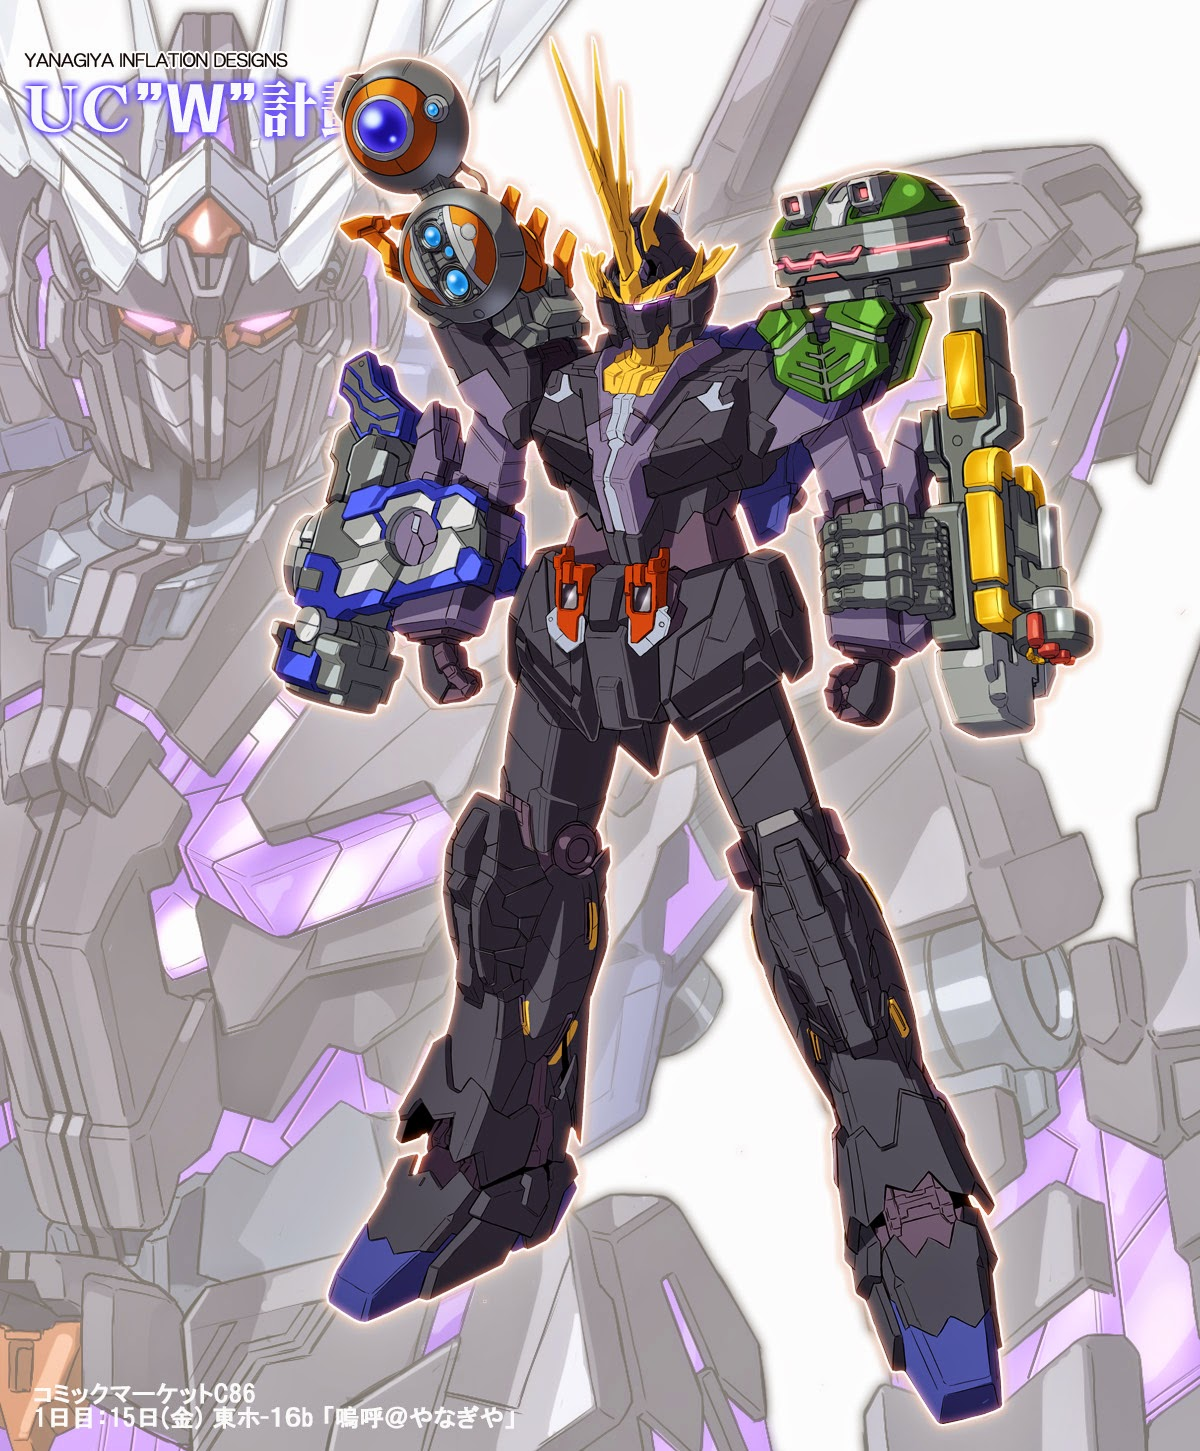 How To Build A Sub Box >> Gundam x Kamen Rider W Crossover Fanarts - Gundam Kits ...